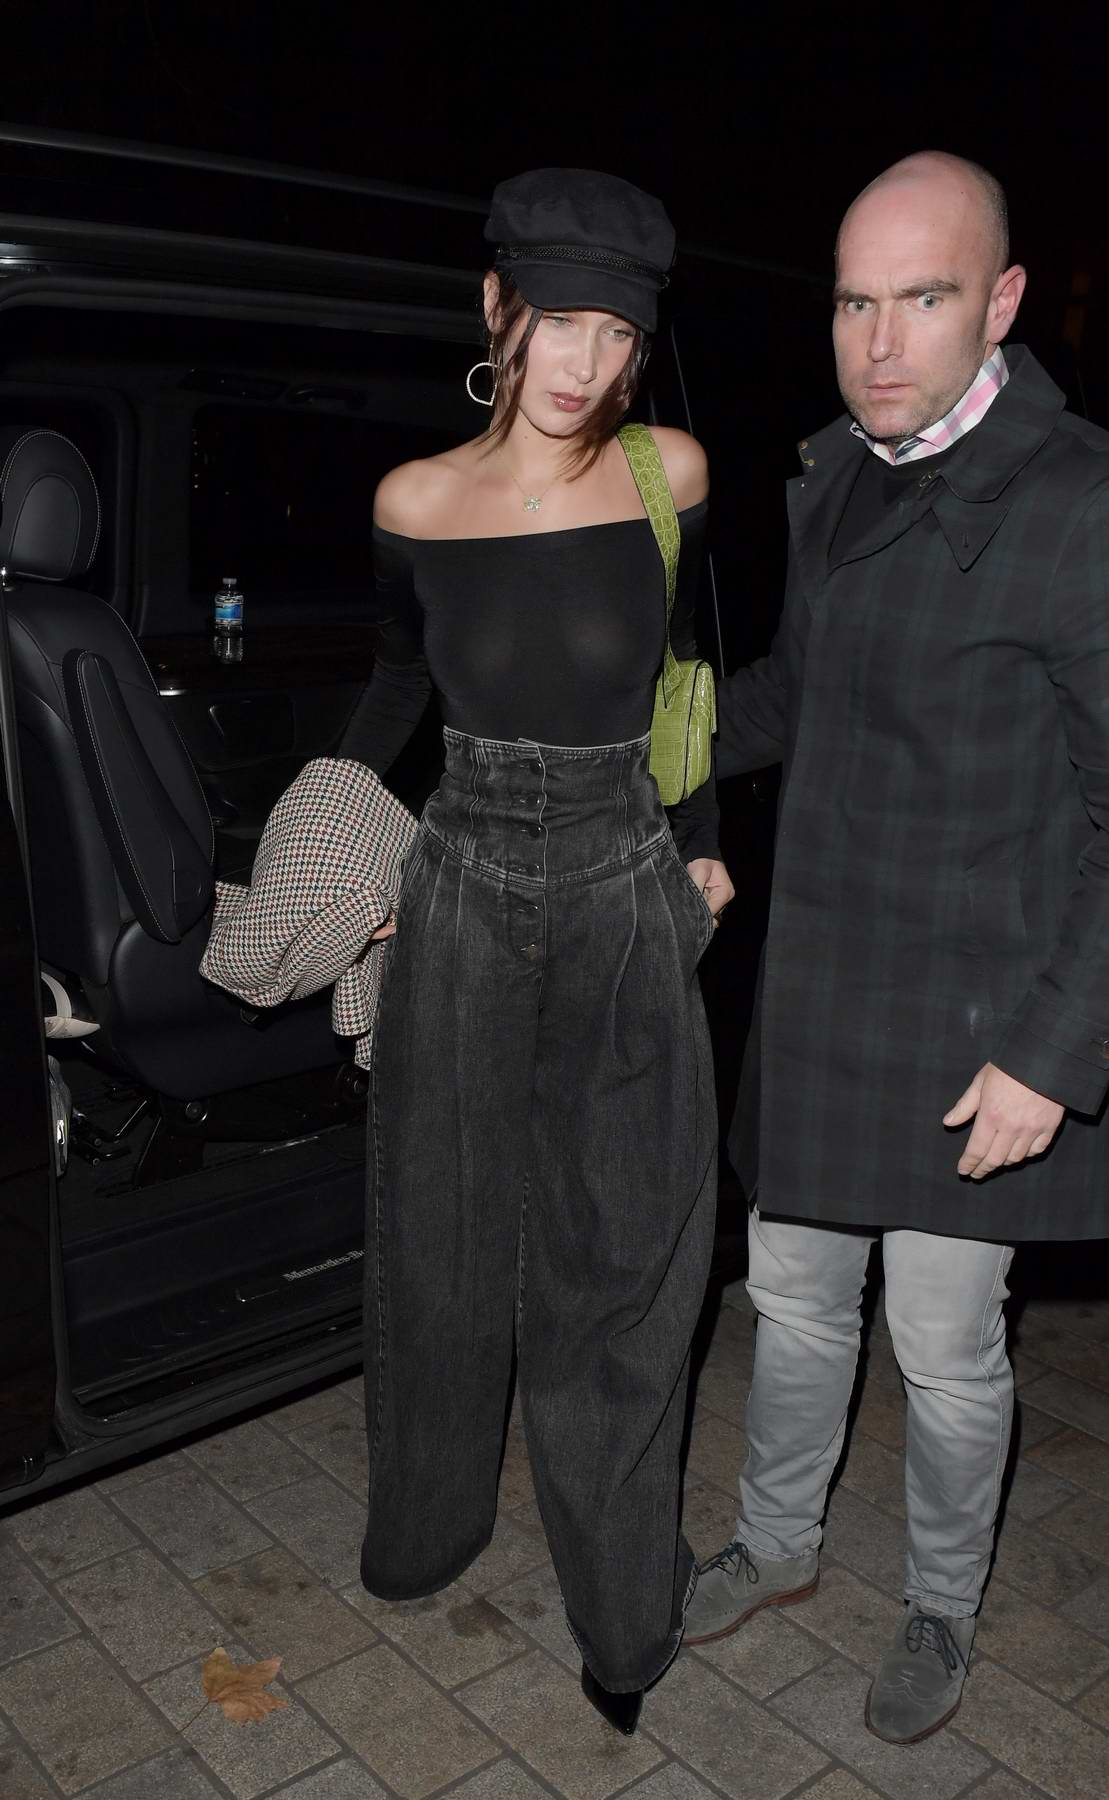 Bella Hadid heading for a night out in London